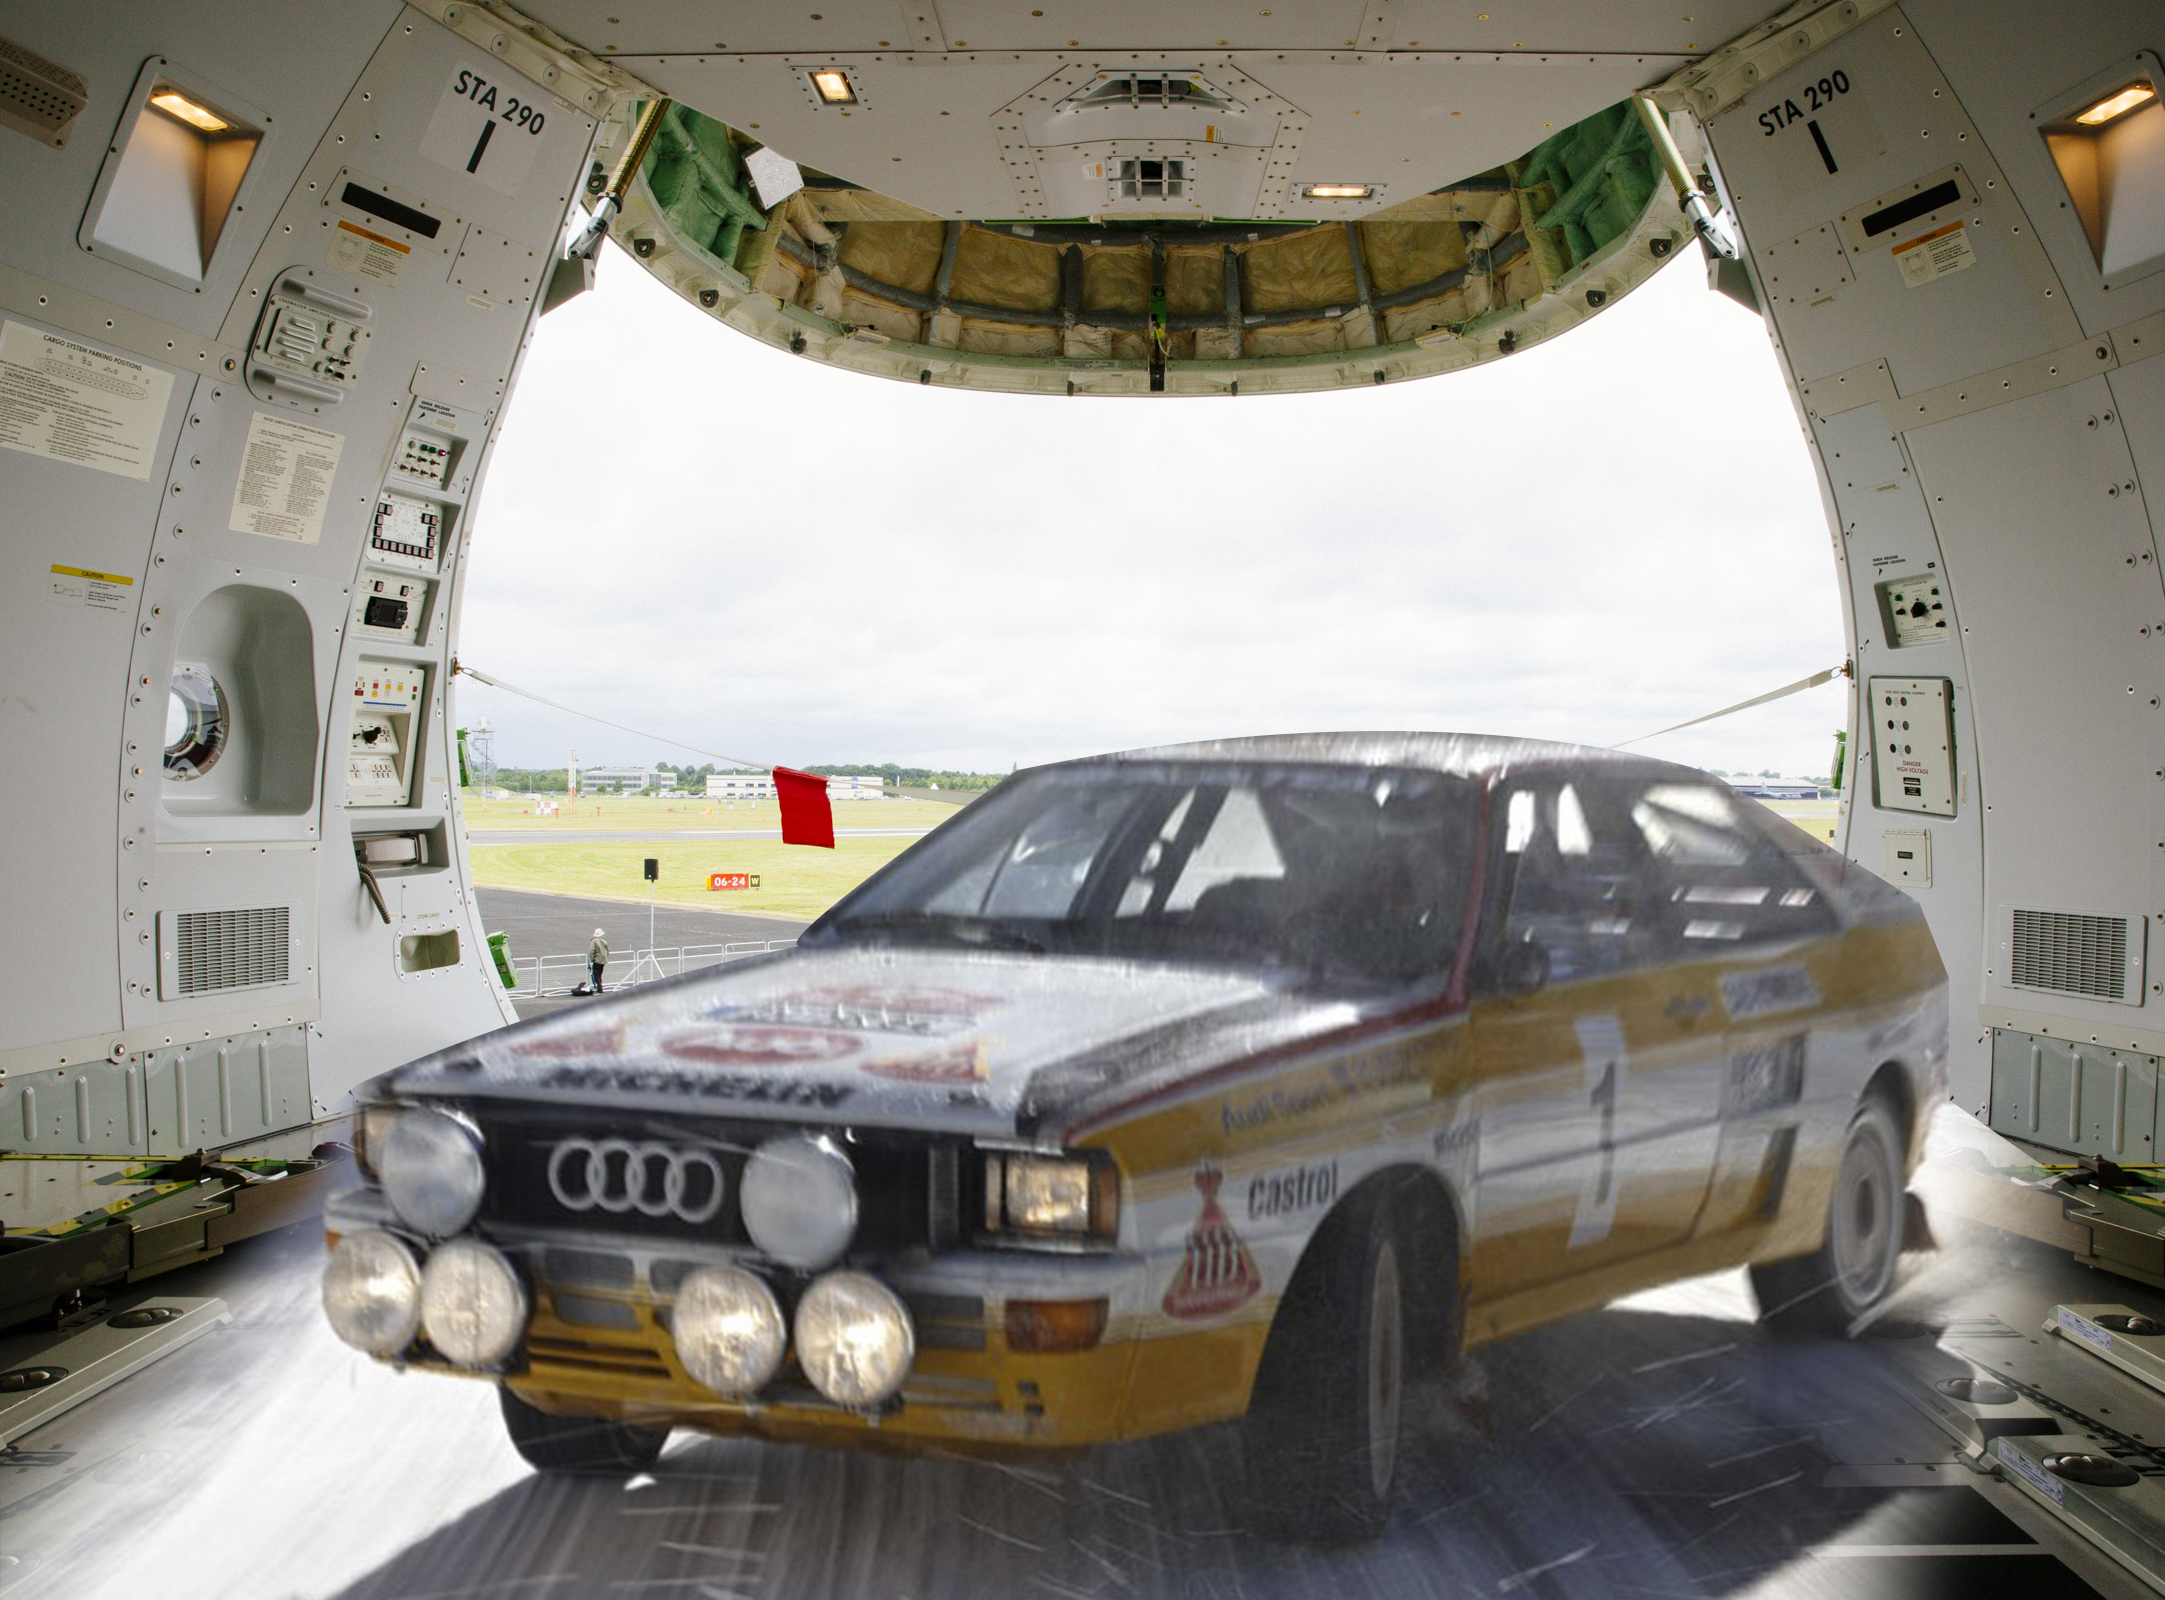 Audi ur-quattro Rally version is flying with an aircraft.